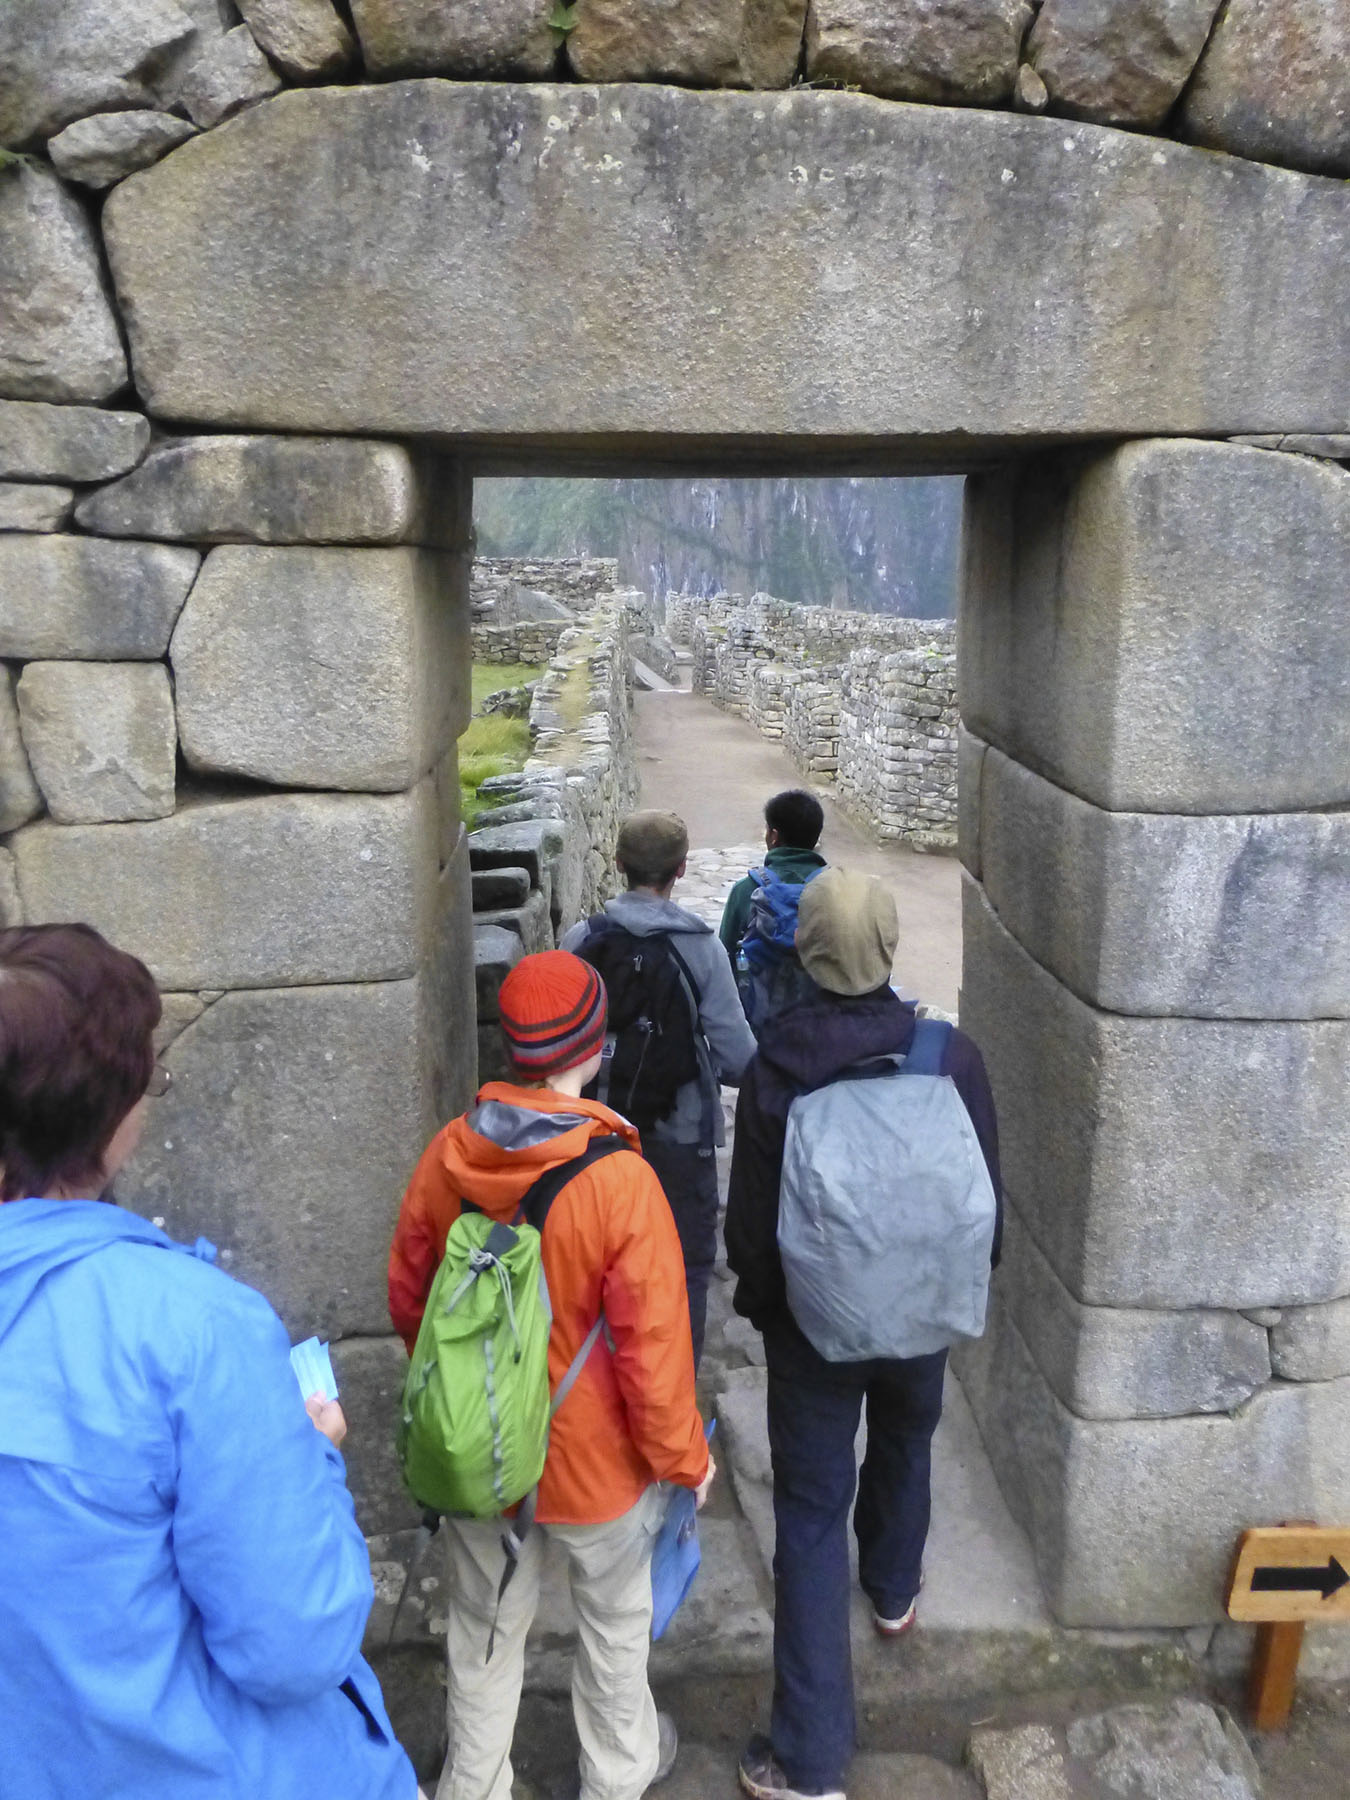 Main gate to Machu Picchu - Check out that stonework!